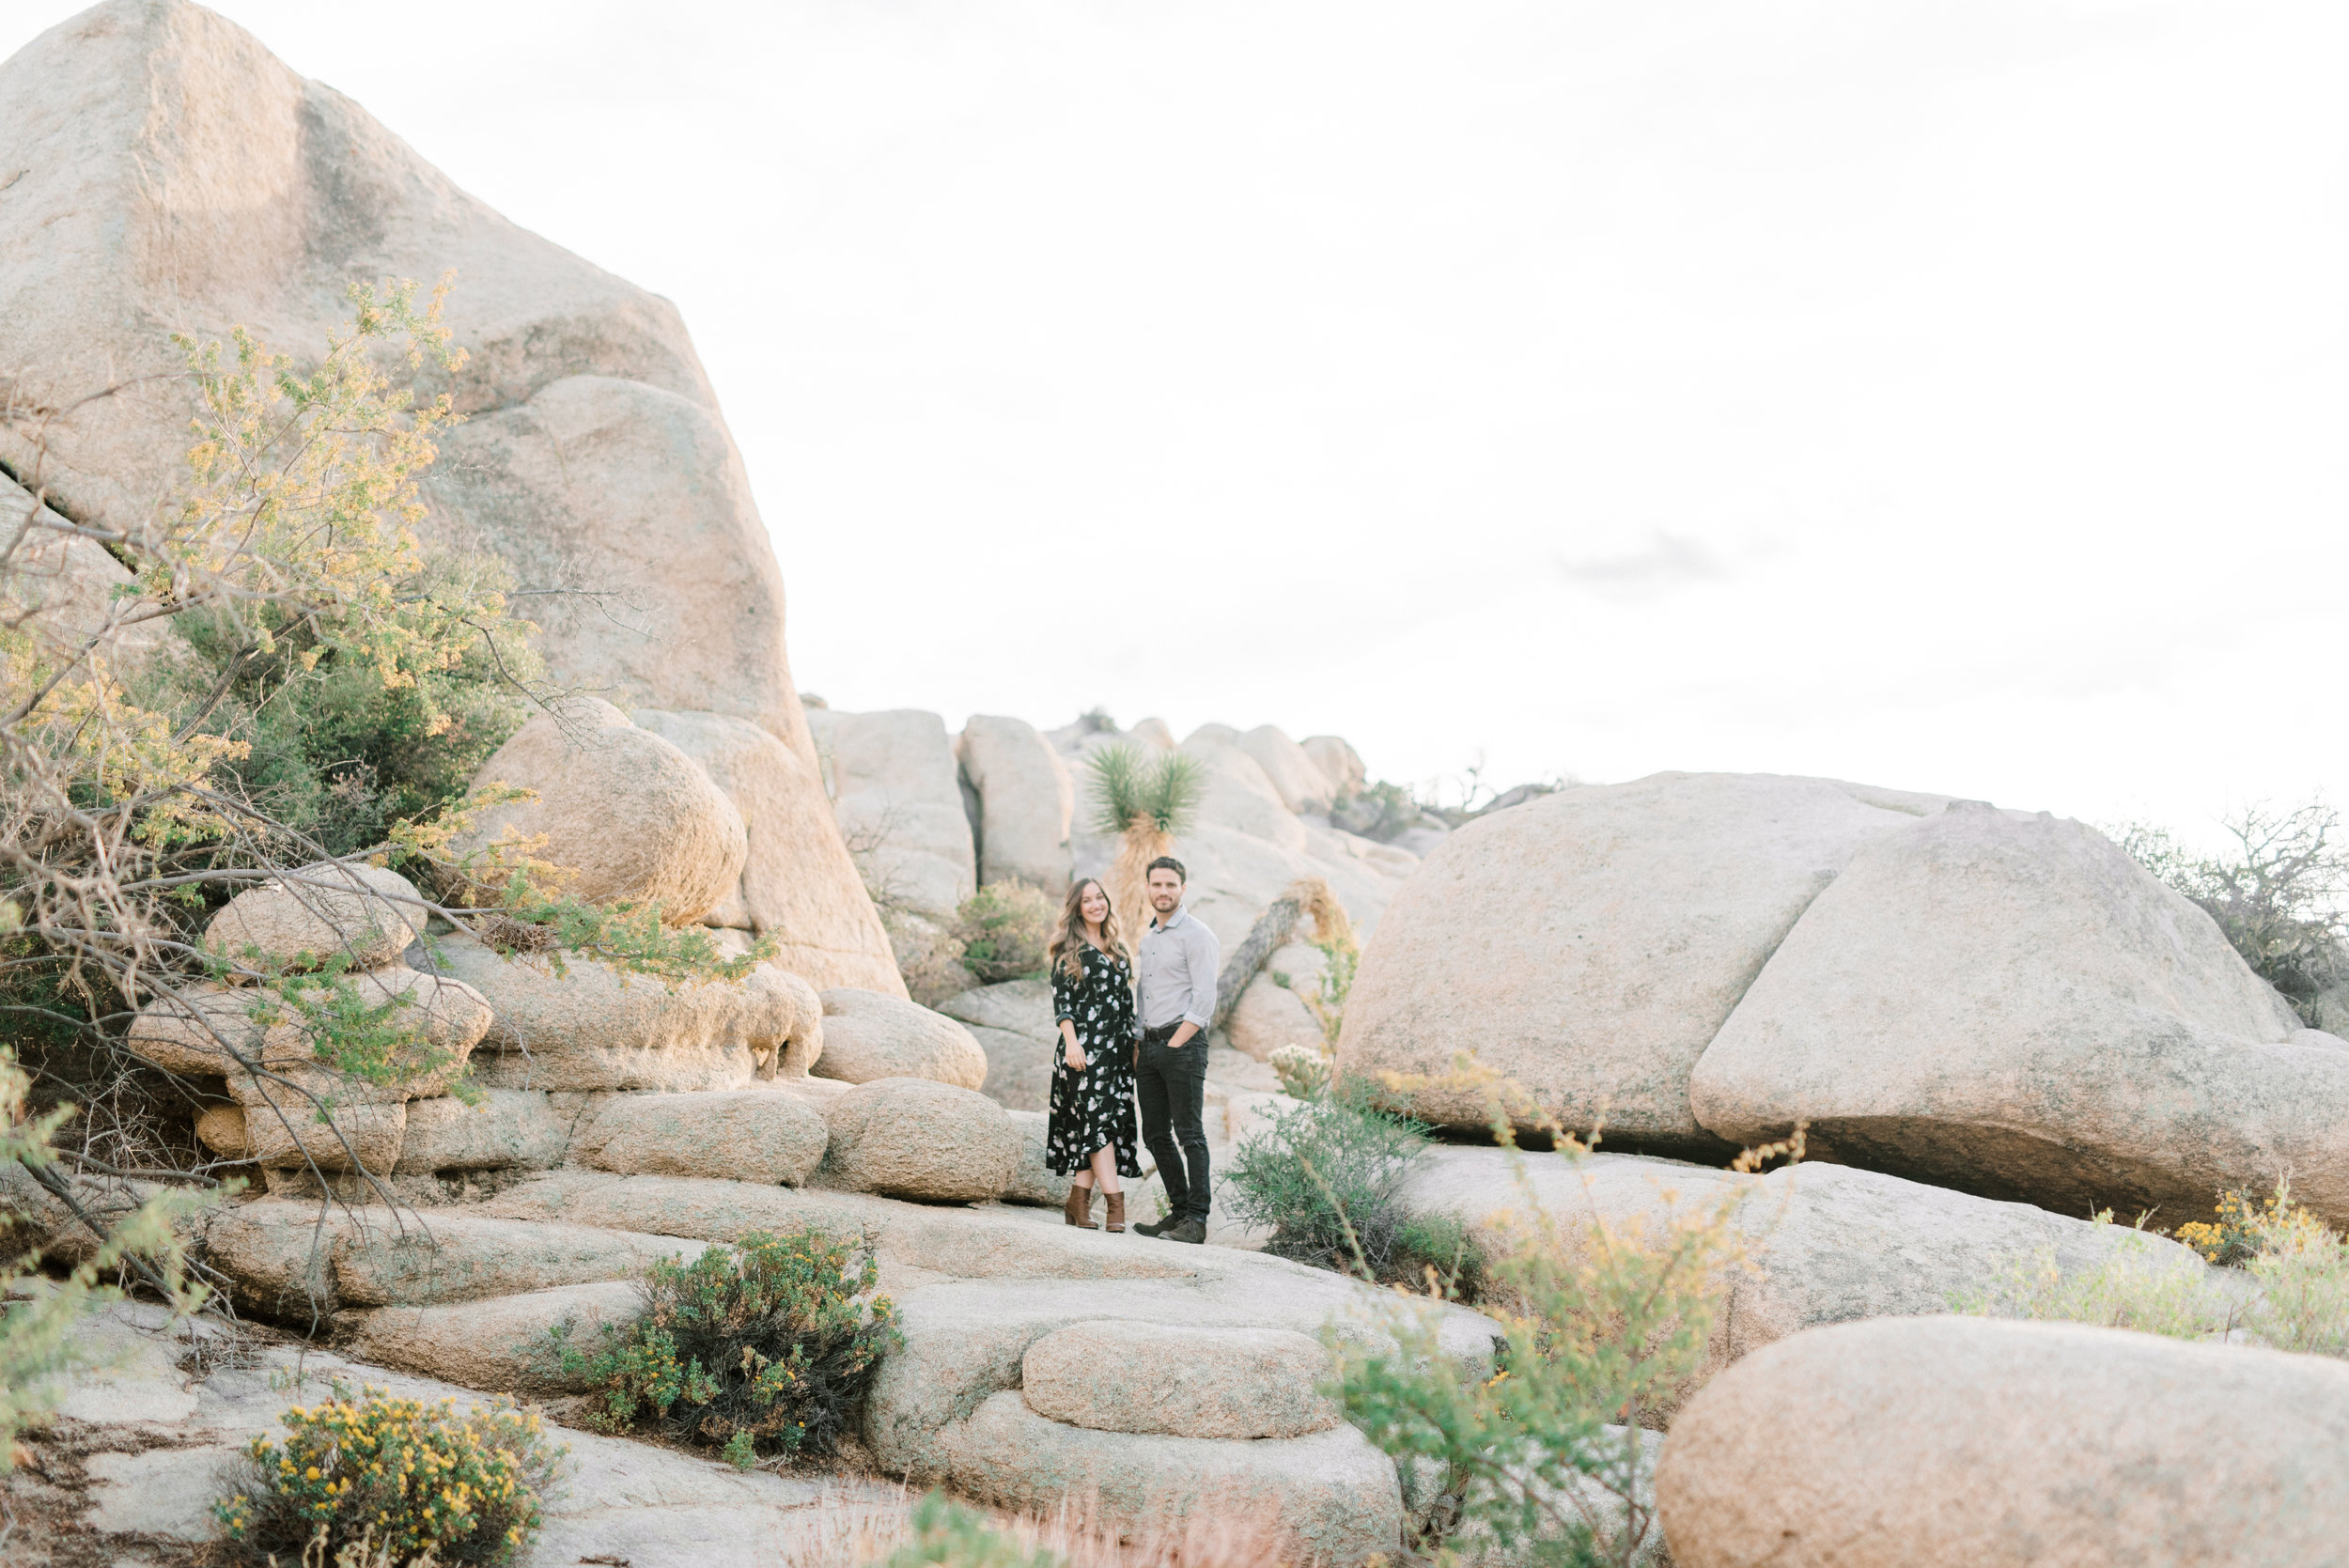 The rocky landscape in the sunset made for a dramatic backdrop at this free-spirited desert engagement session in Joshue Tree